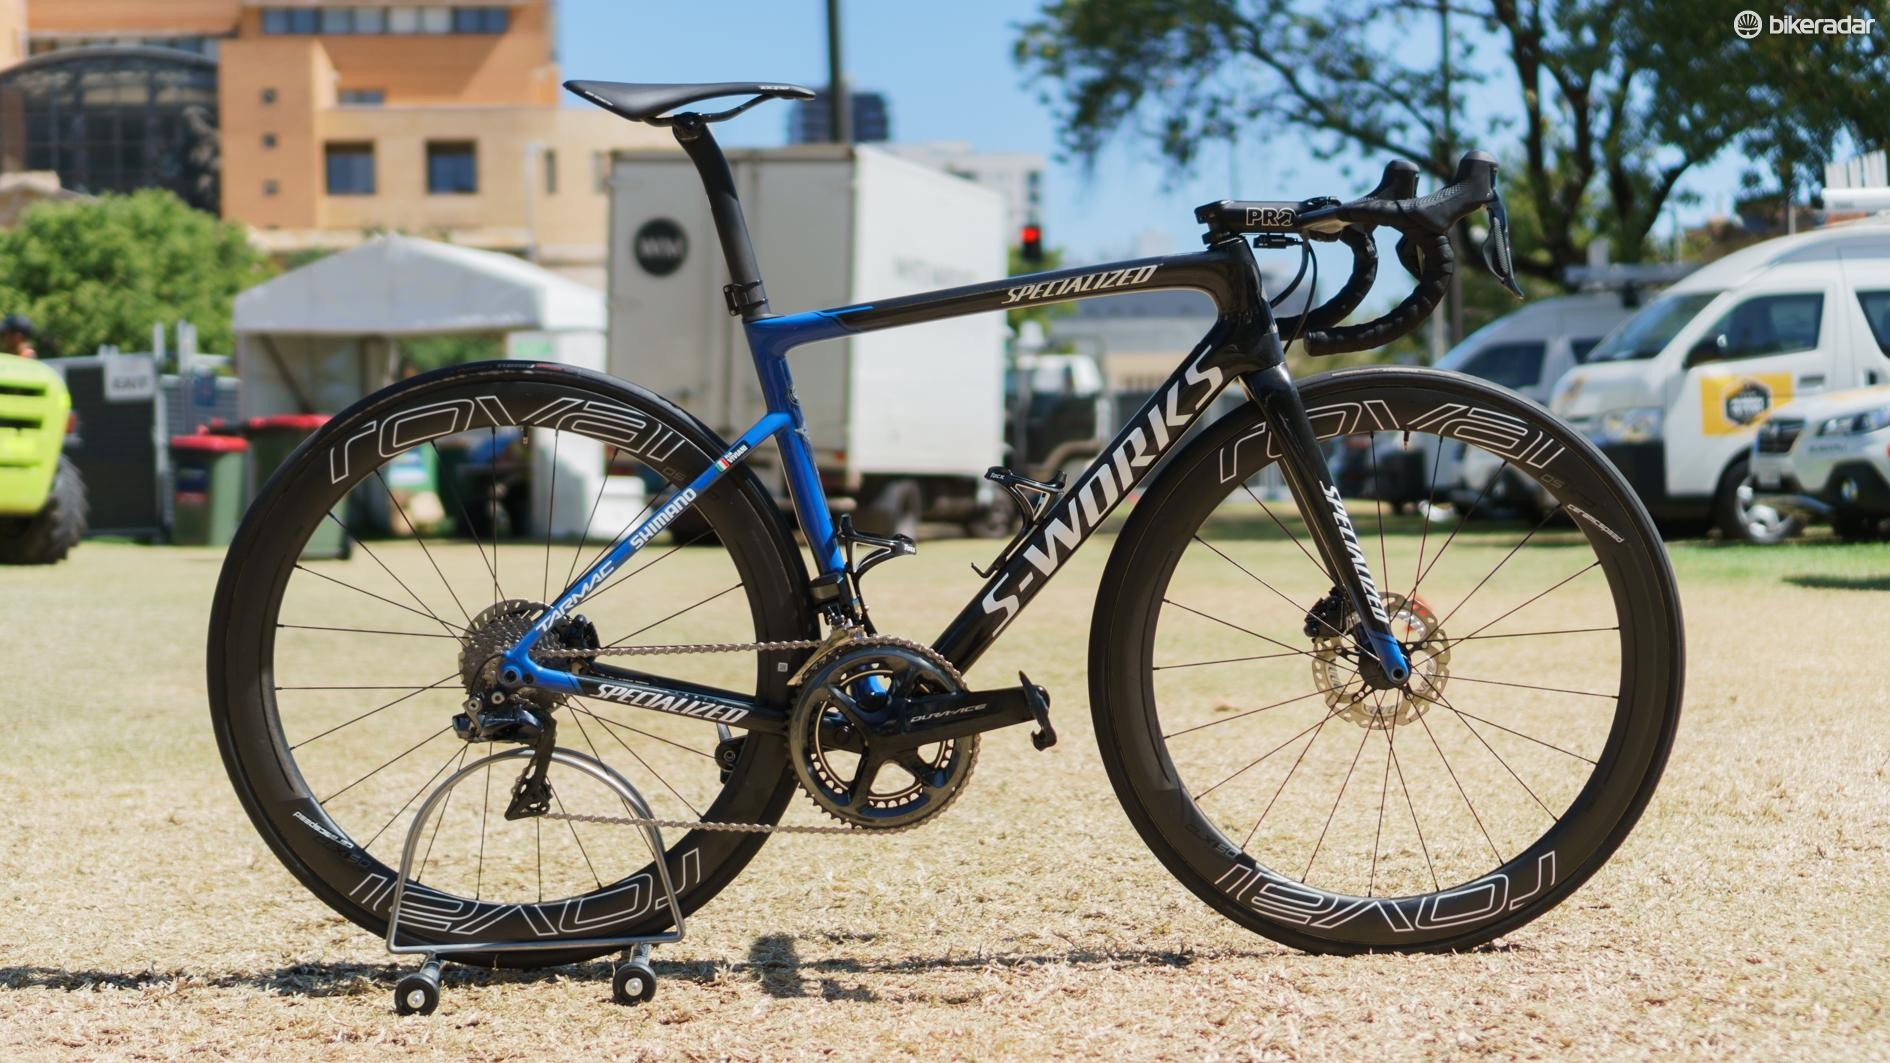 Viviani will also ride an S-Works Tarmac Disc